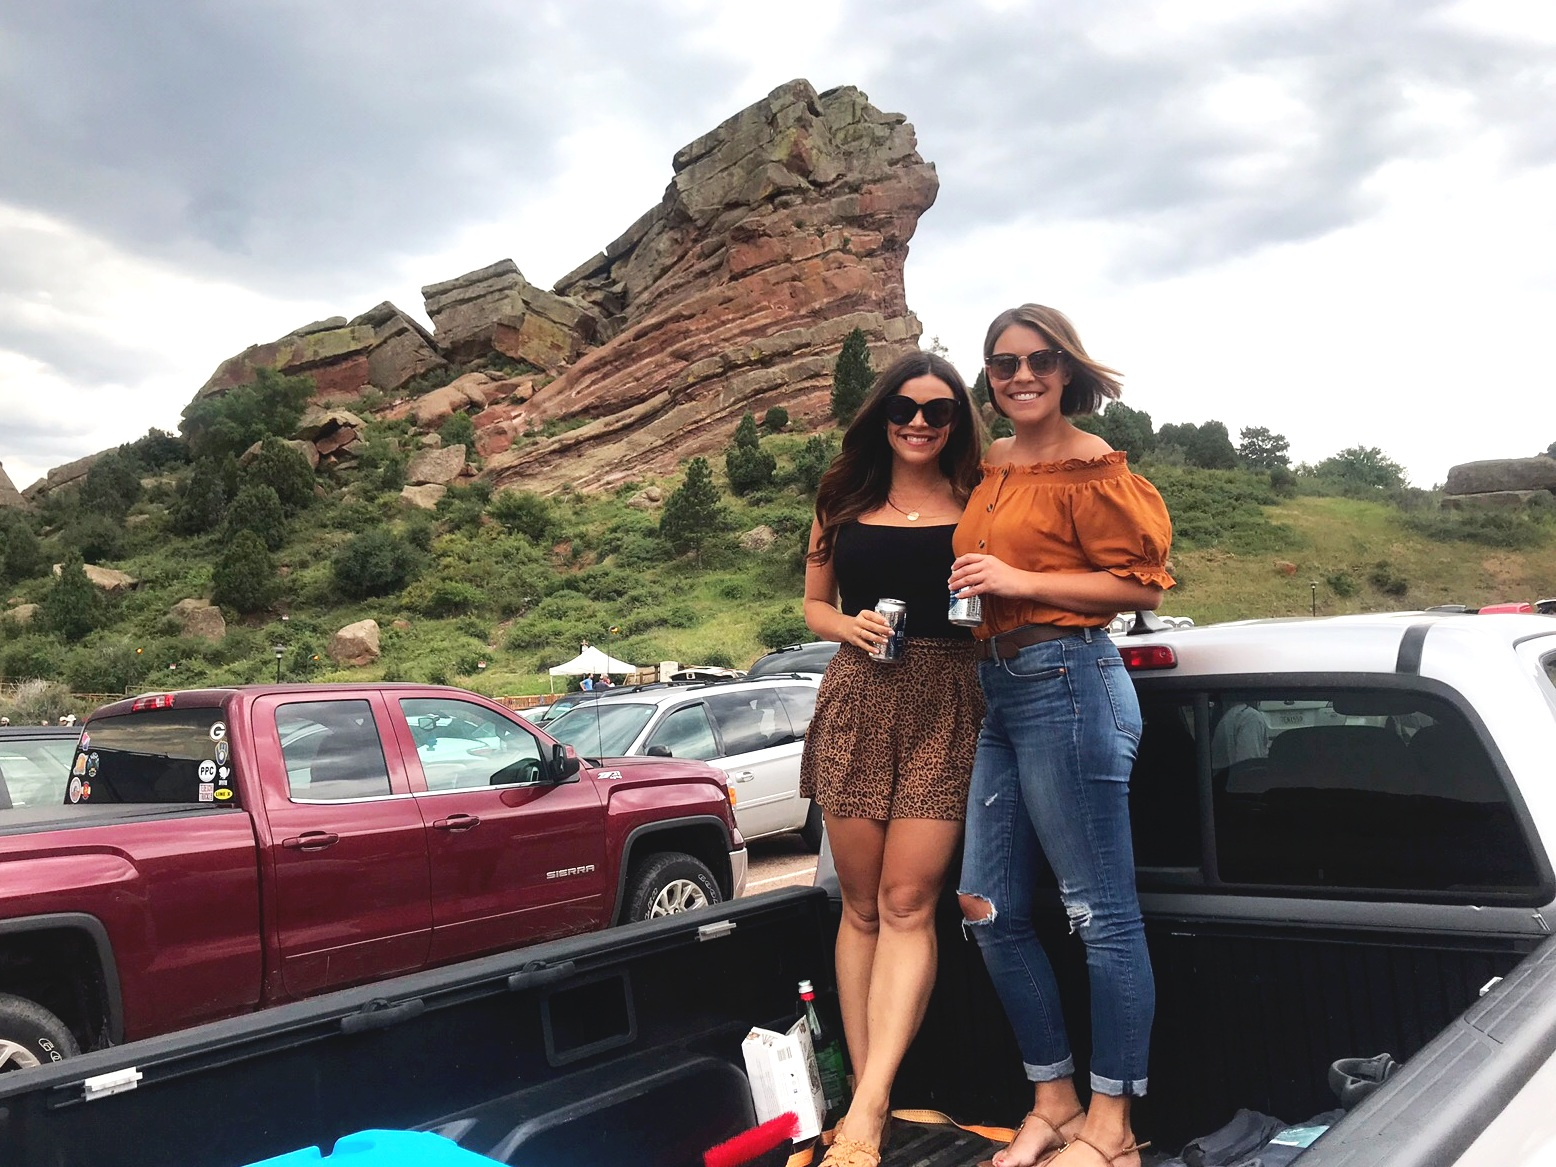 My sister and I tailgating at Red Rocks